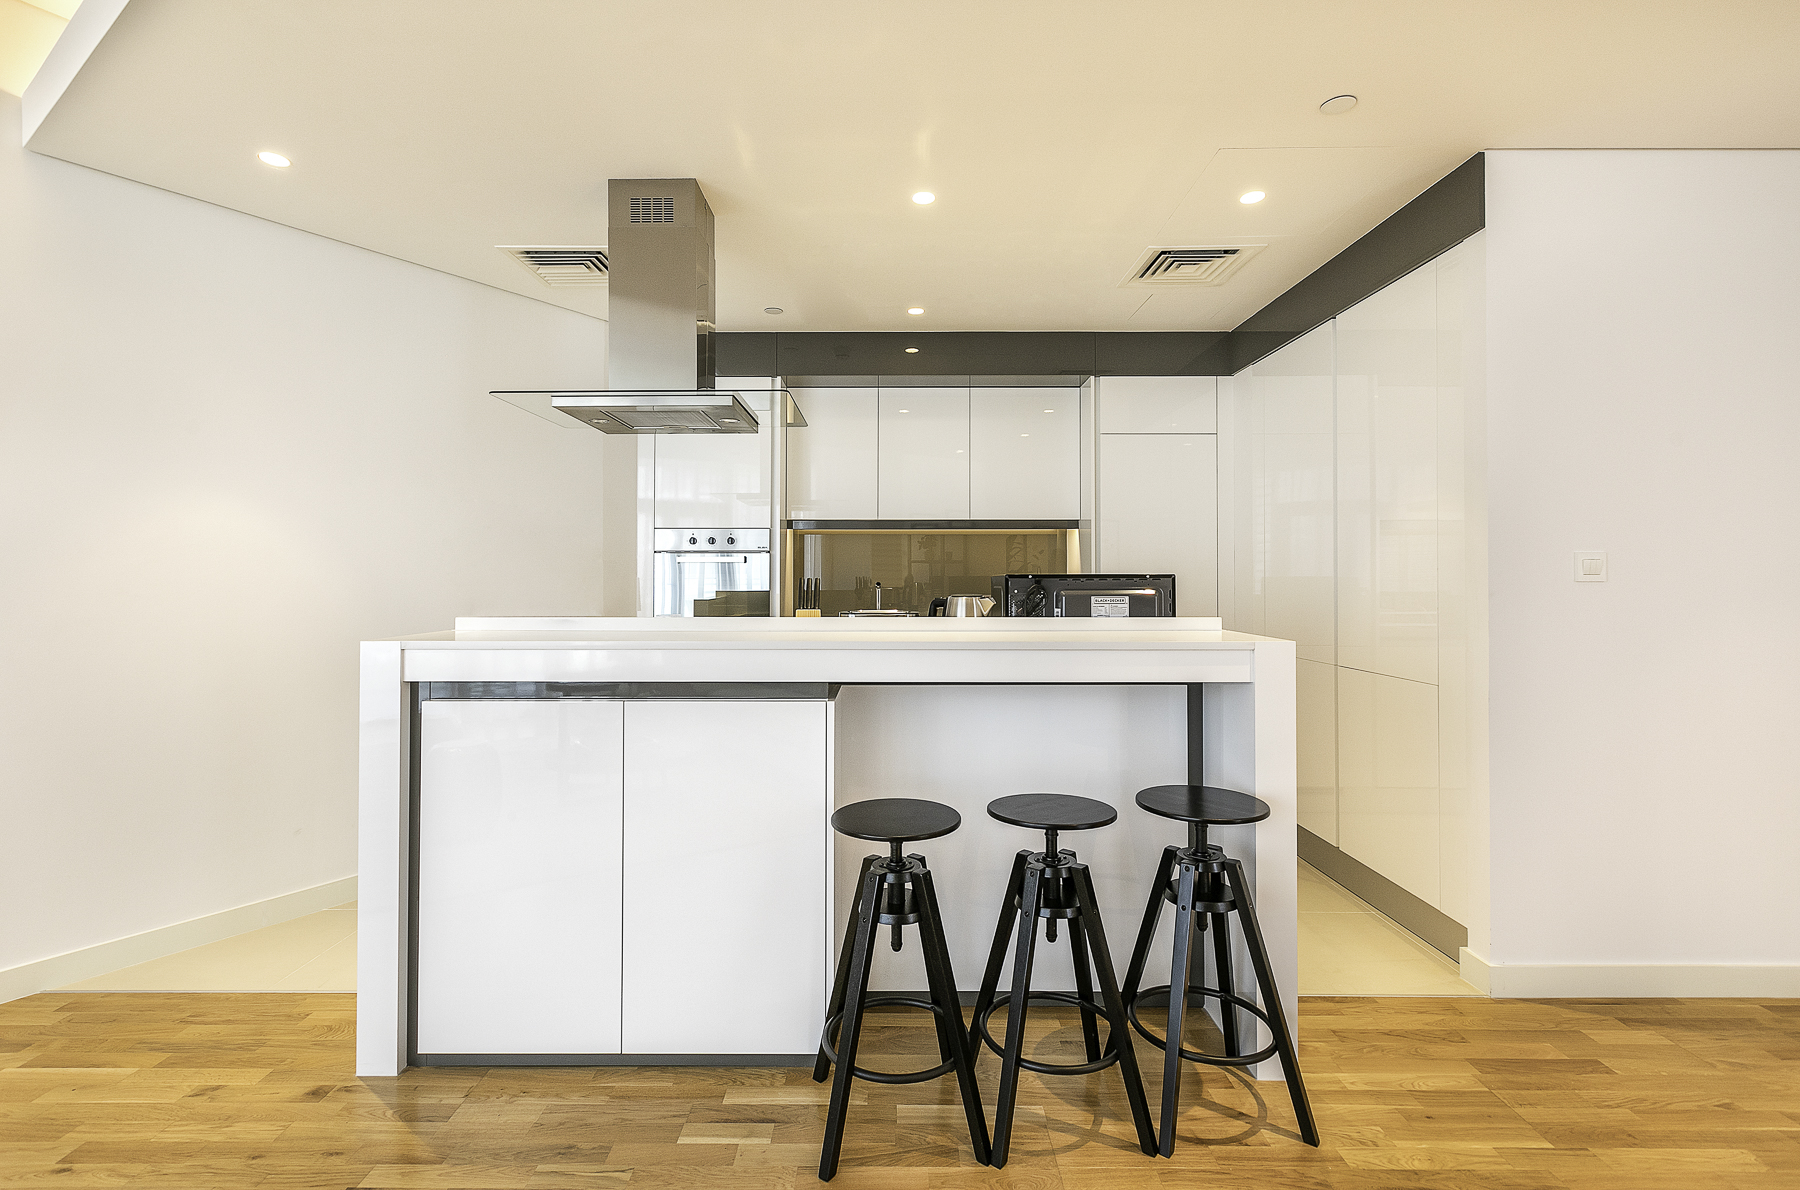 Experience the Bluewaters lifestyle On This All New 1 Bed in Building 5 photo 21298942